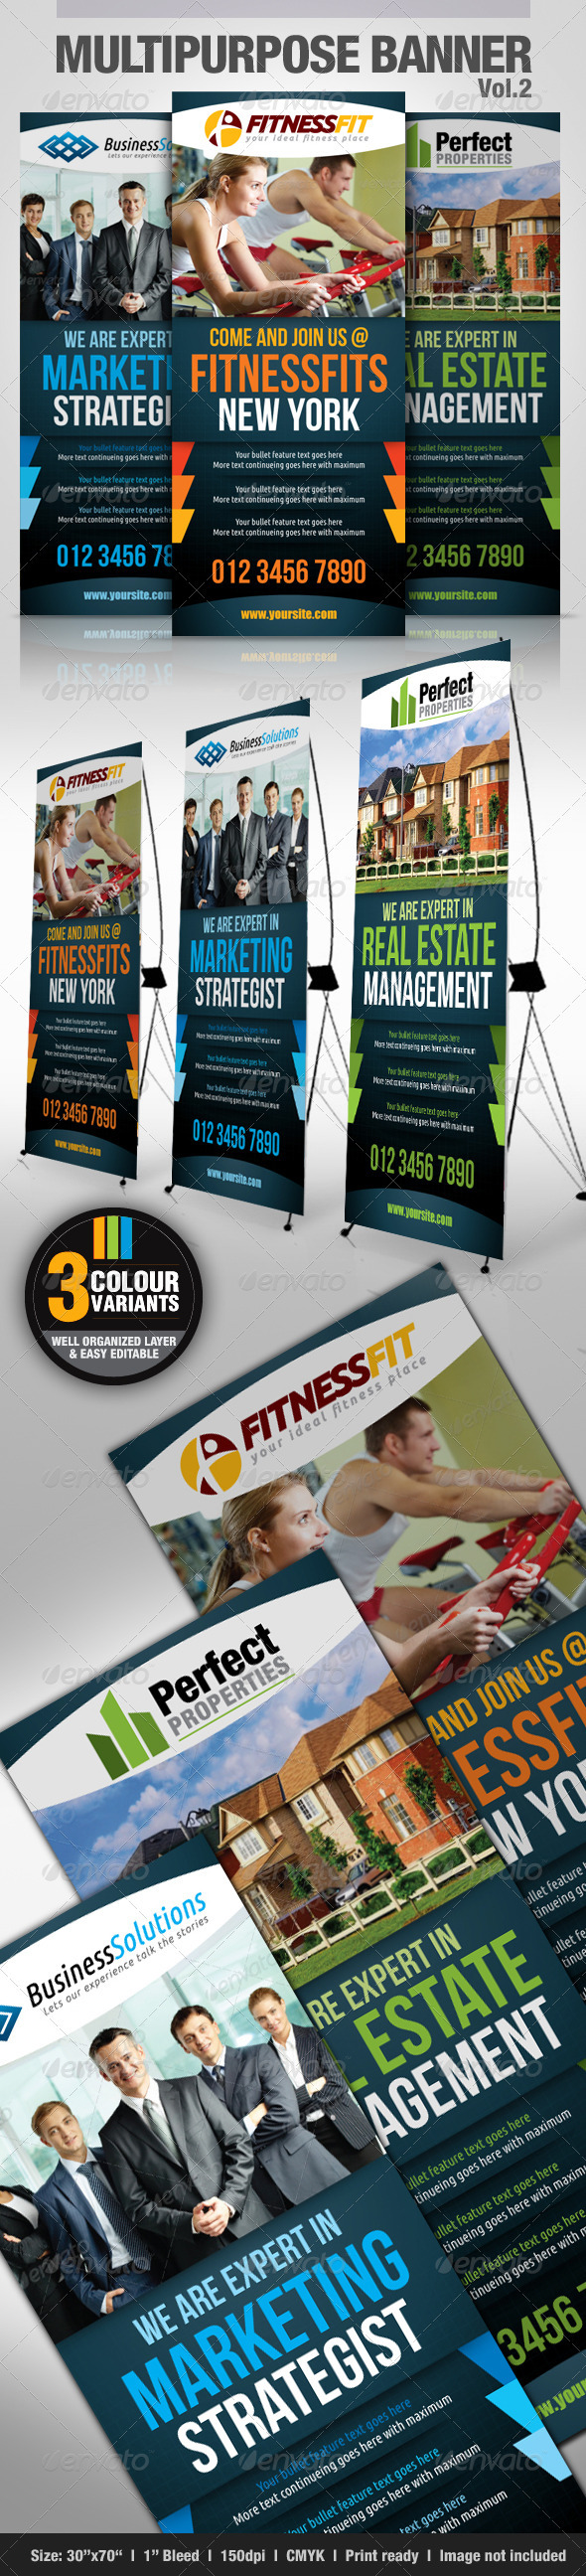 Multipurpose Banner Vol.2 - Signage Print Templates